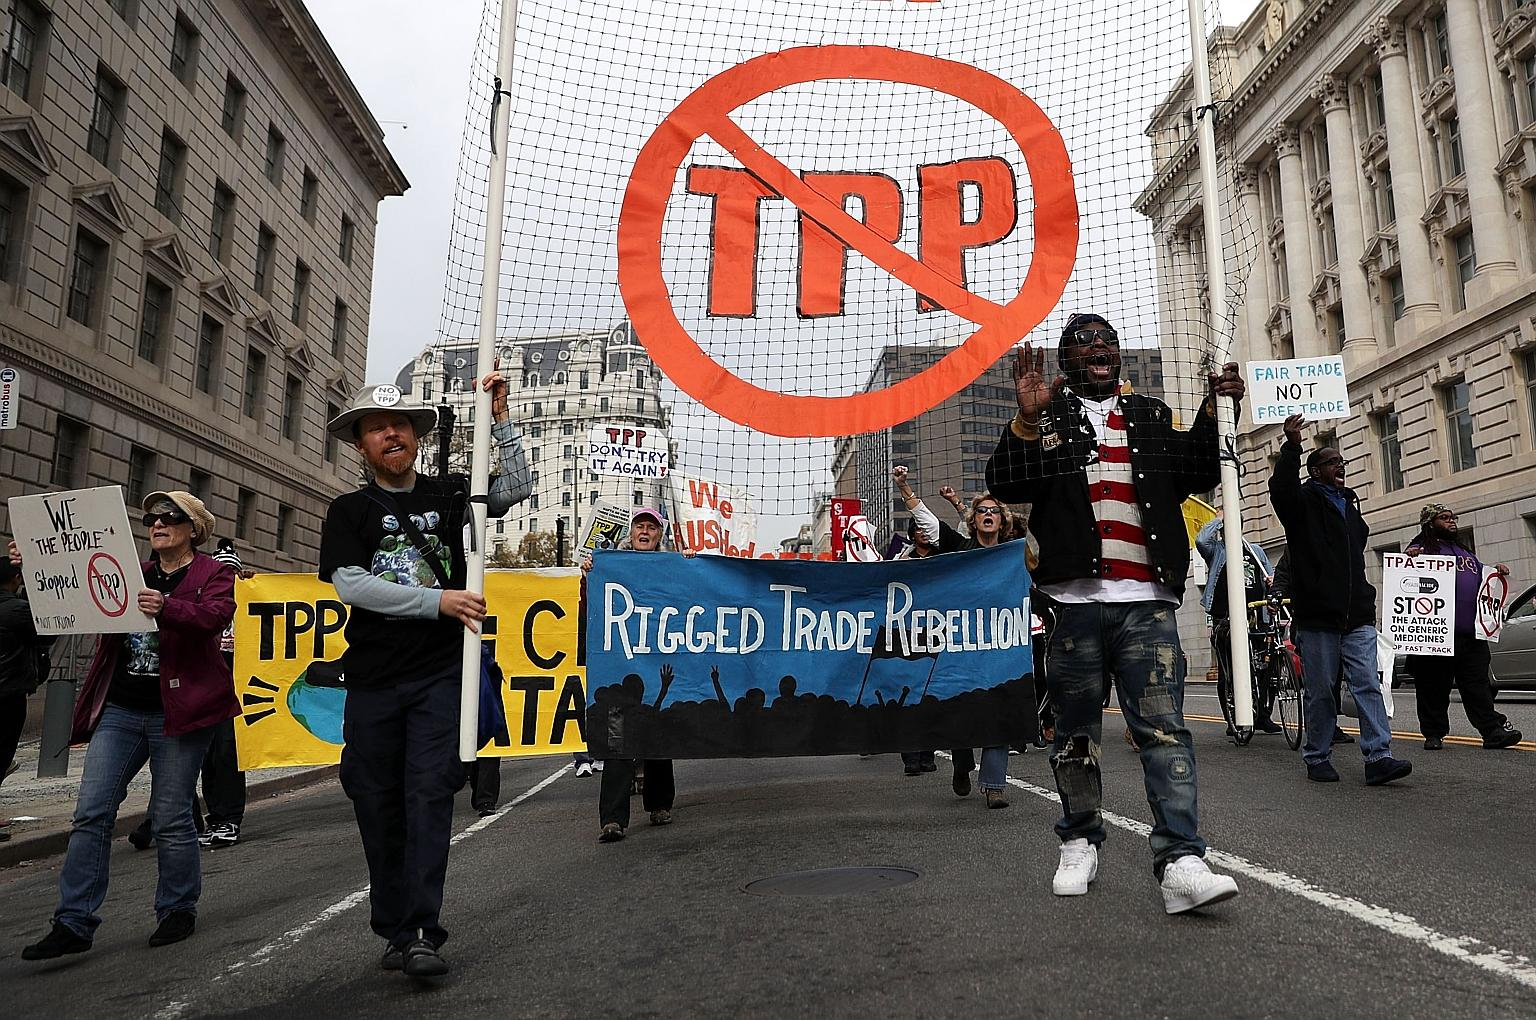 Protesters marching in an anti-TPP rally in Washington, DC last month.